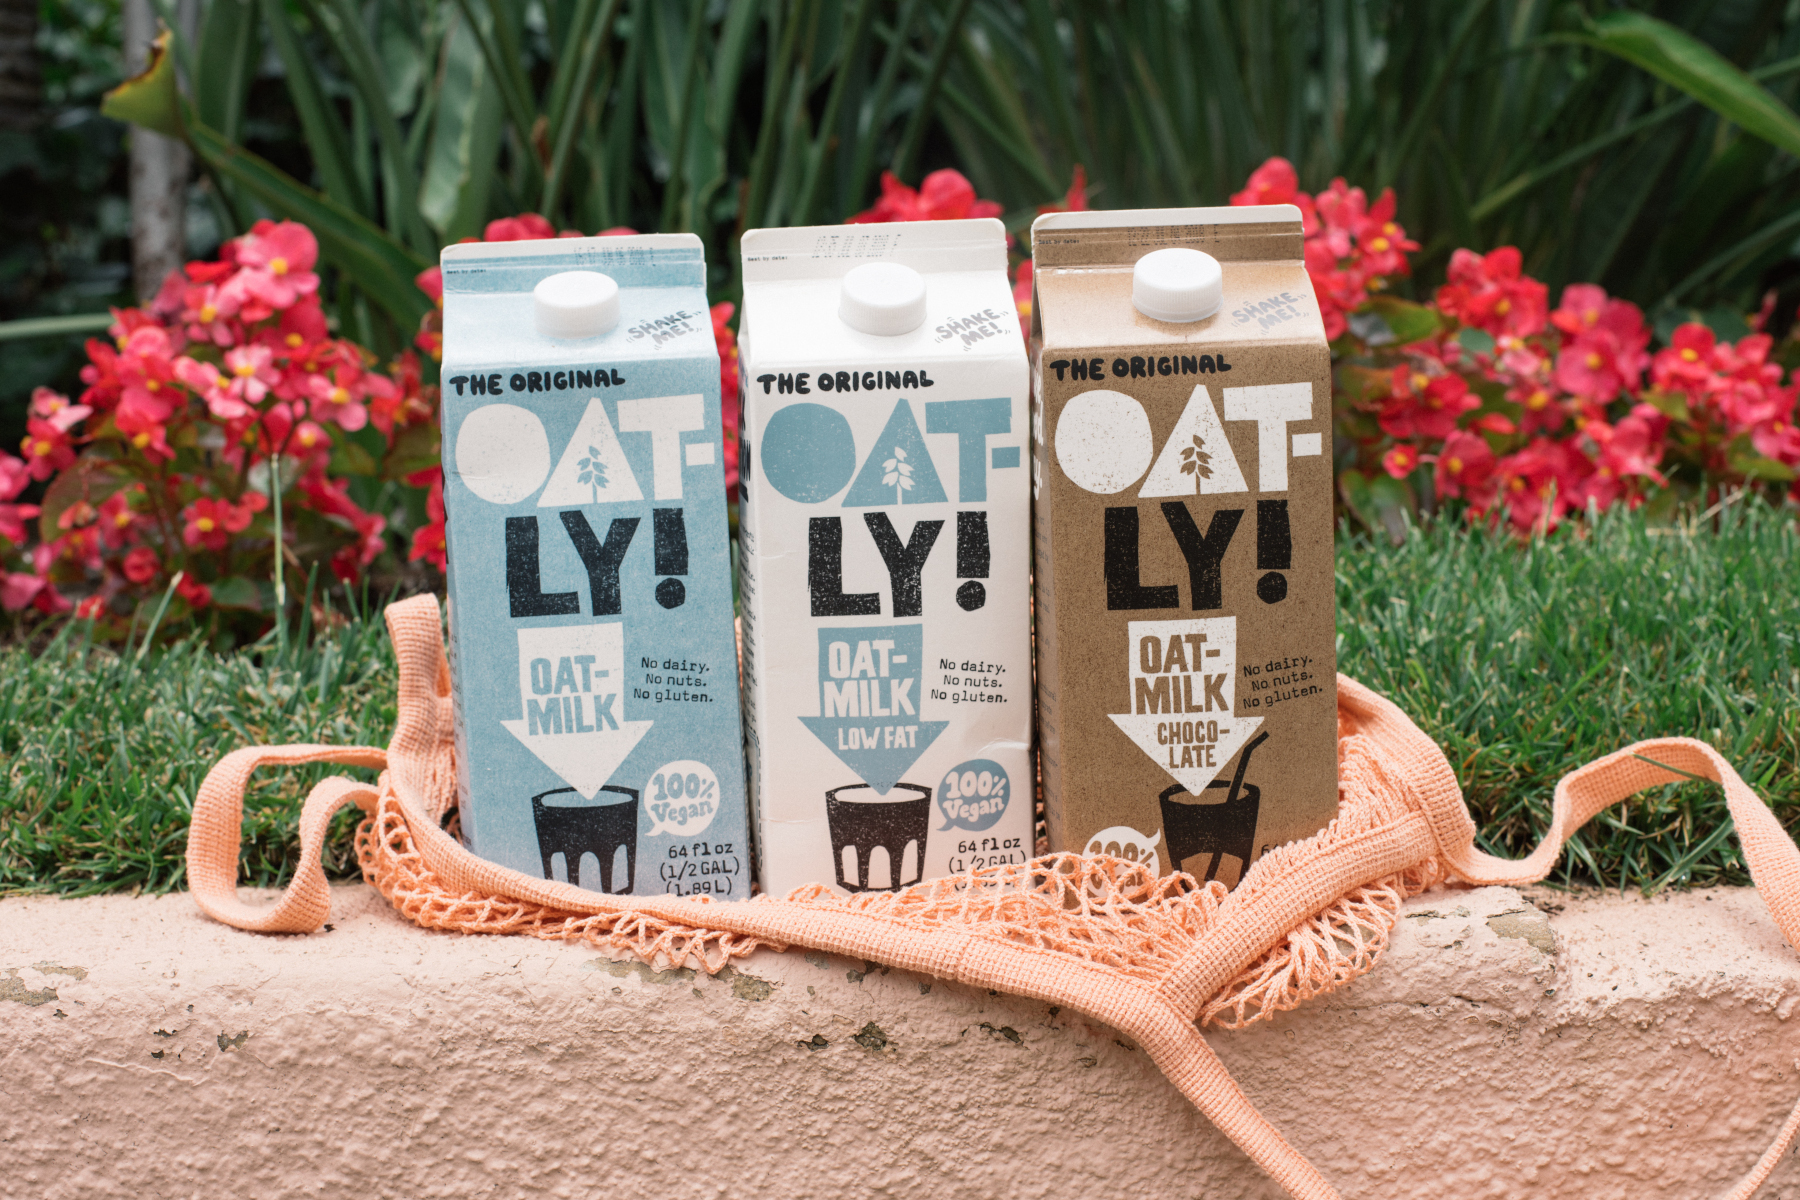 Oatly milk products